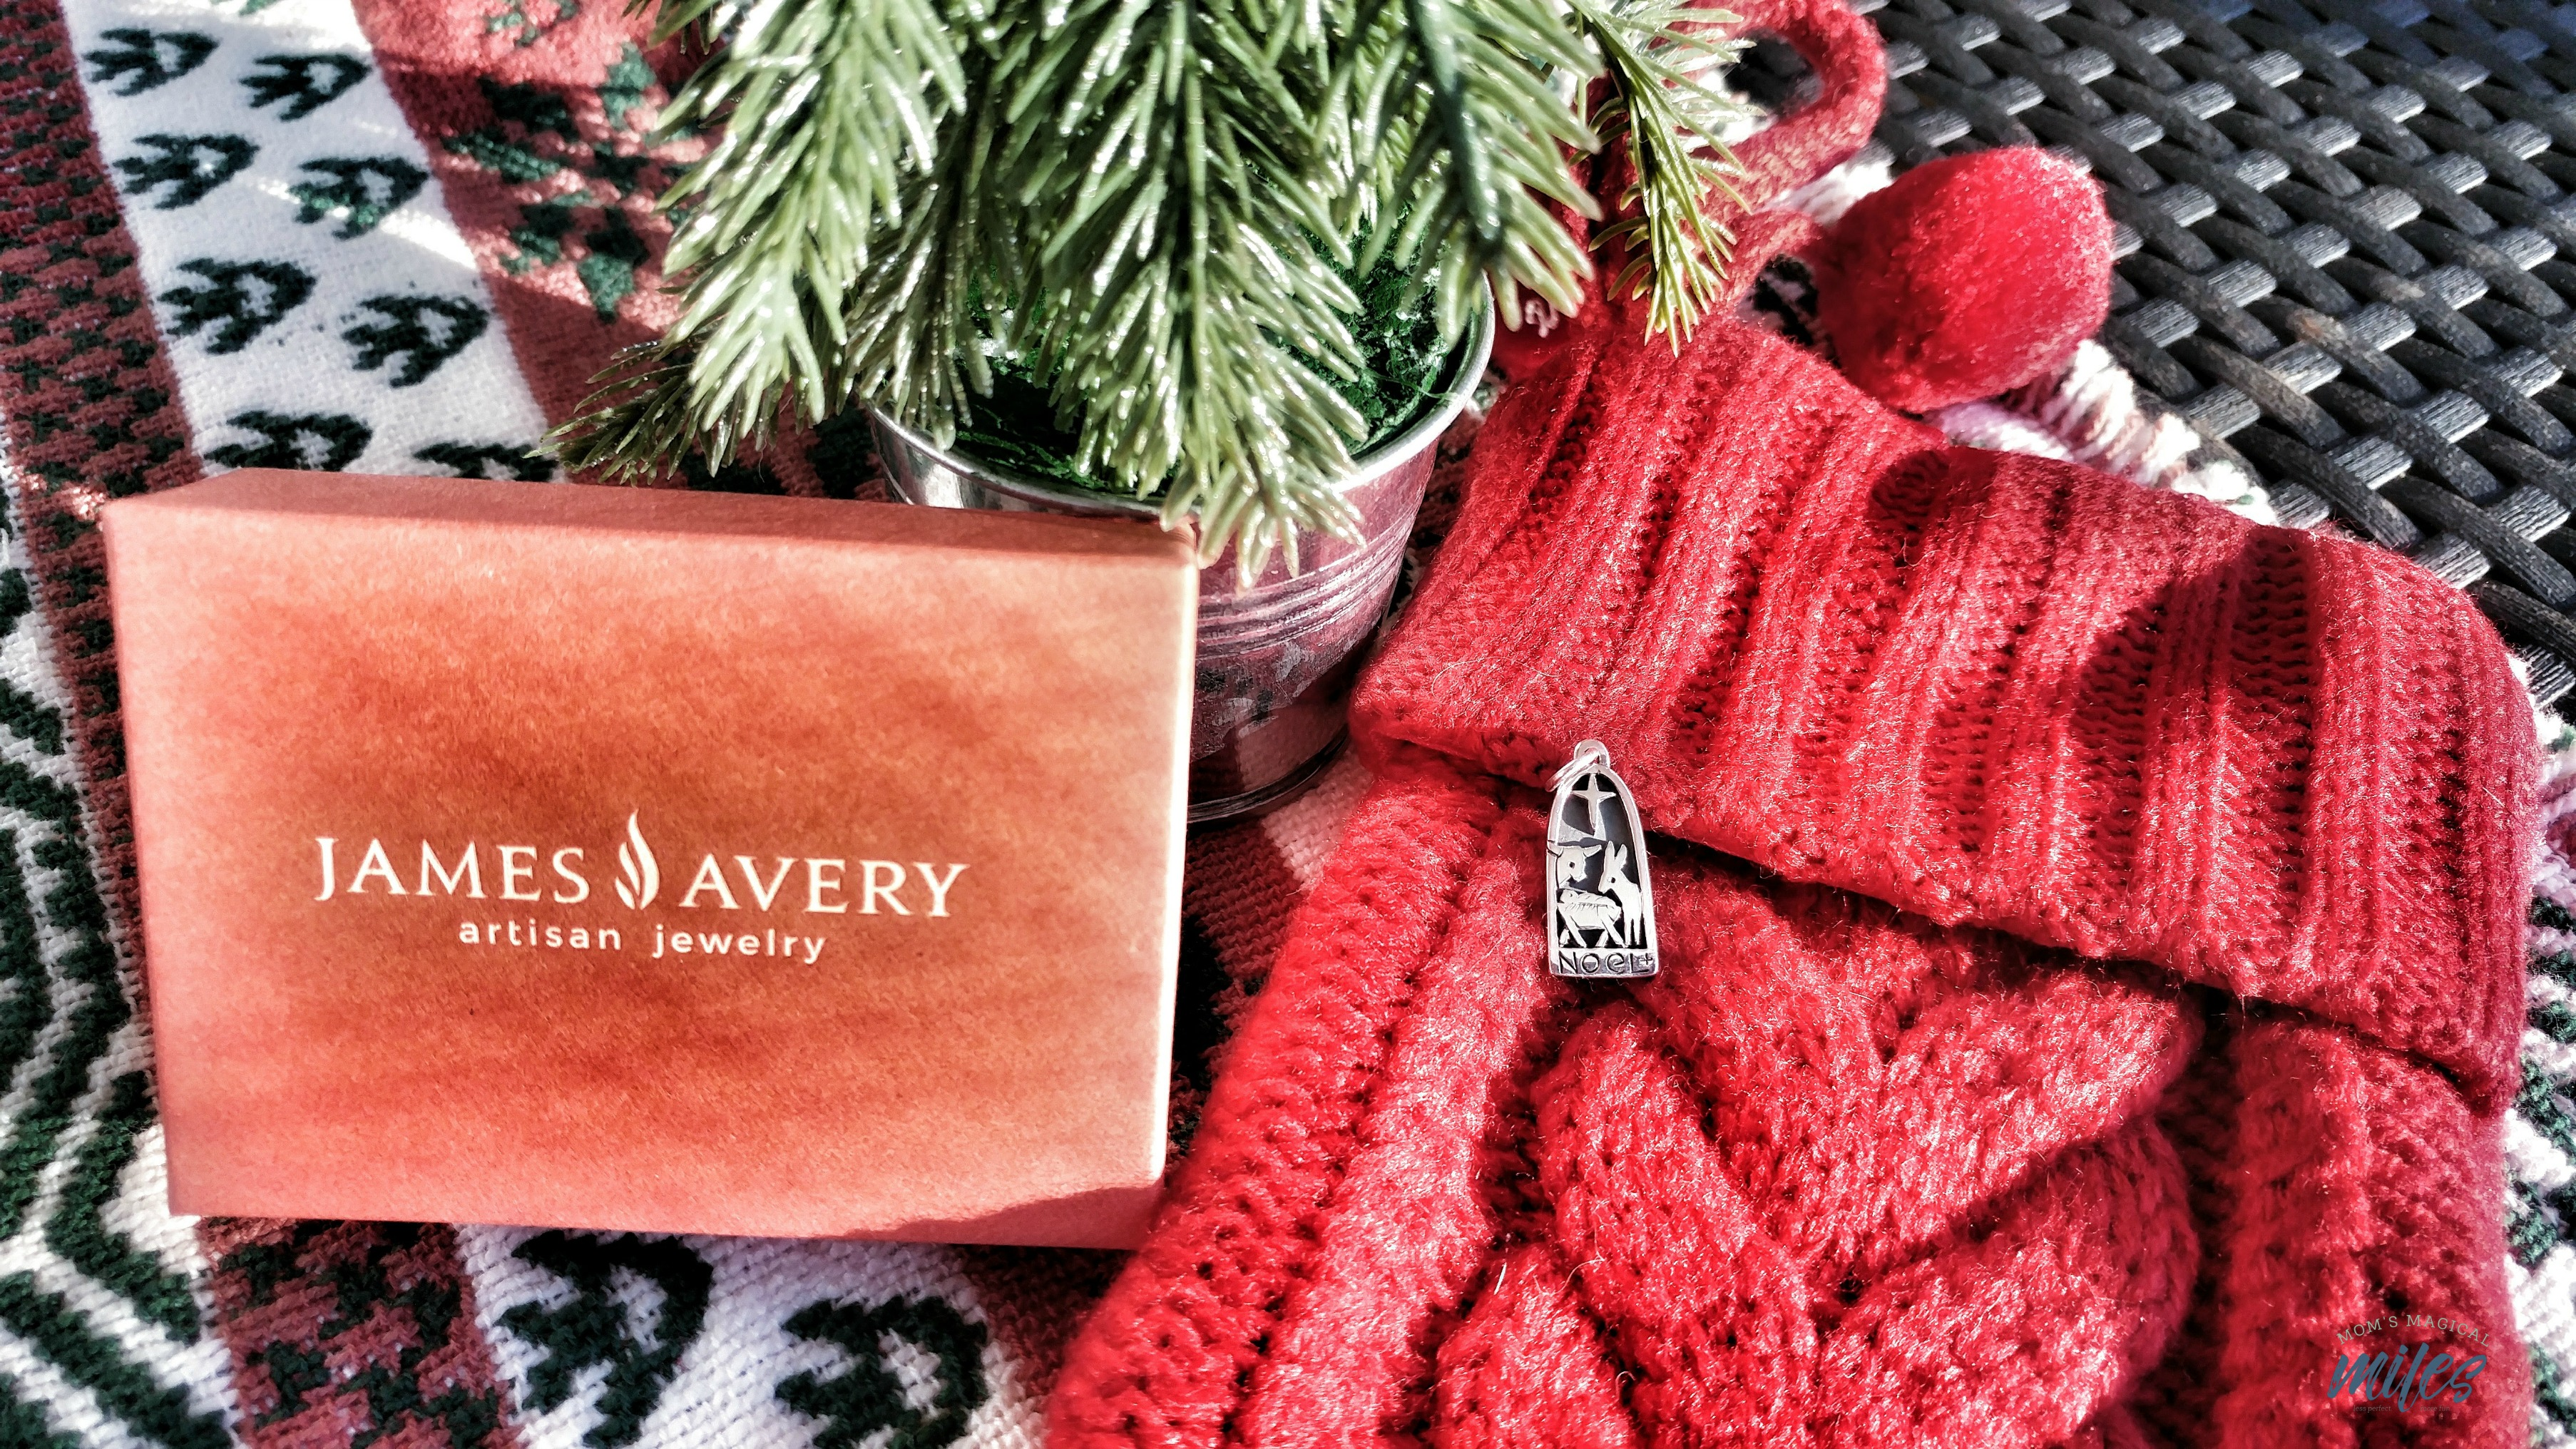 James Avery Artisan Jewelry has so many beautiful Christmas charms from which to choose! My favorite? The Noel Nativity charm.